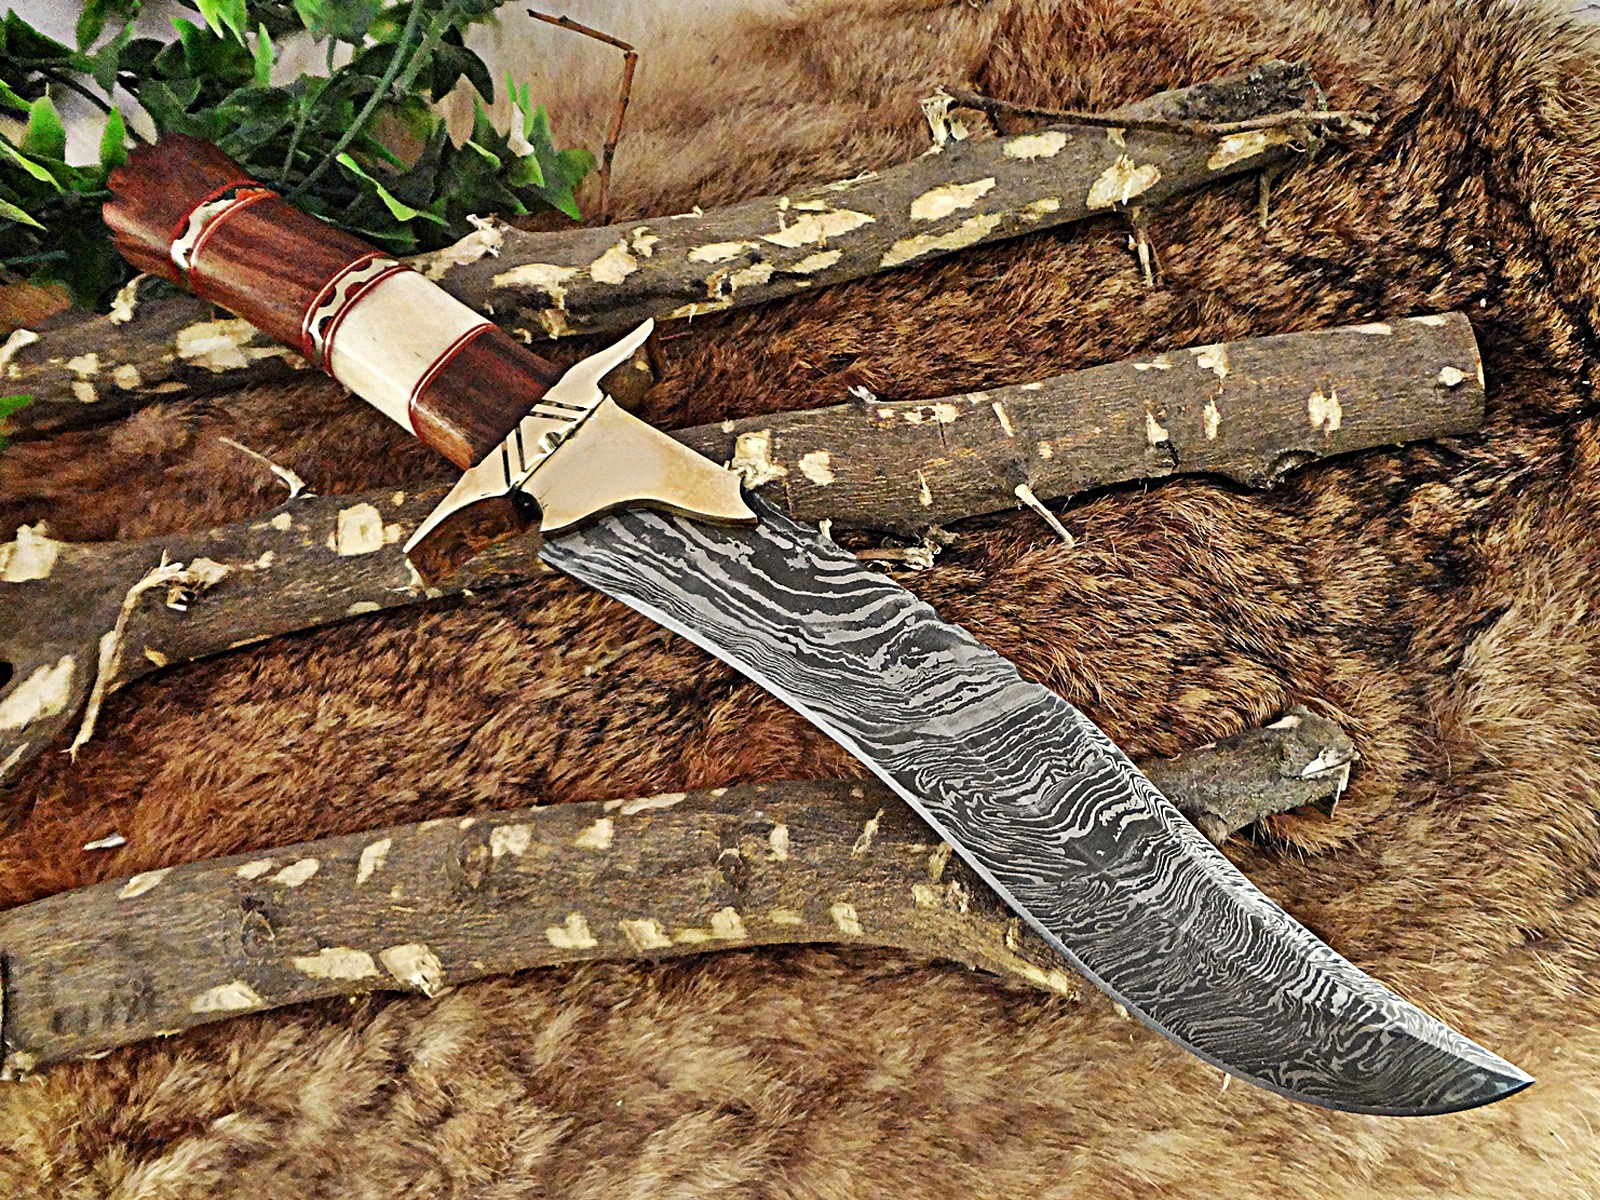 15 long hunting bowie knife hand forged damascus steel red dollar wood with brass pommel. Black Bedroom Furniture Sets. Home Design Ideas